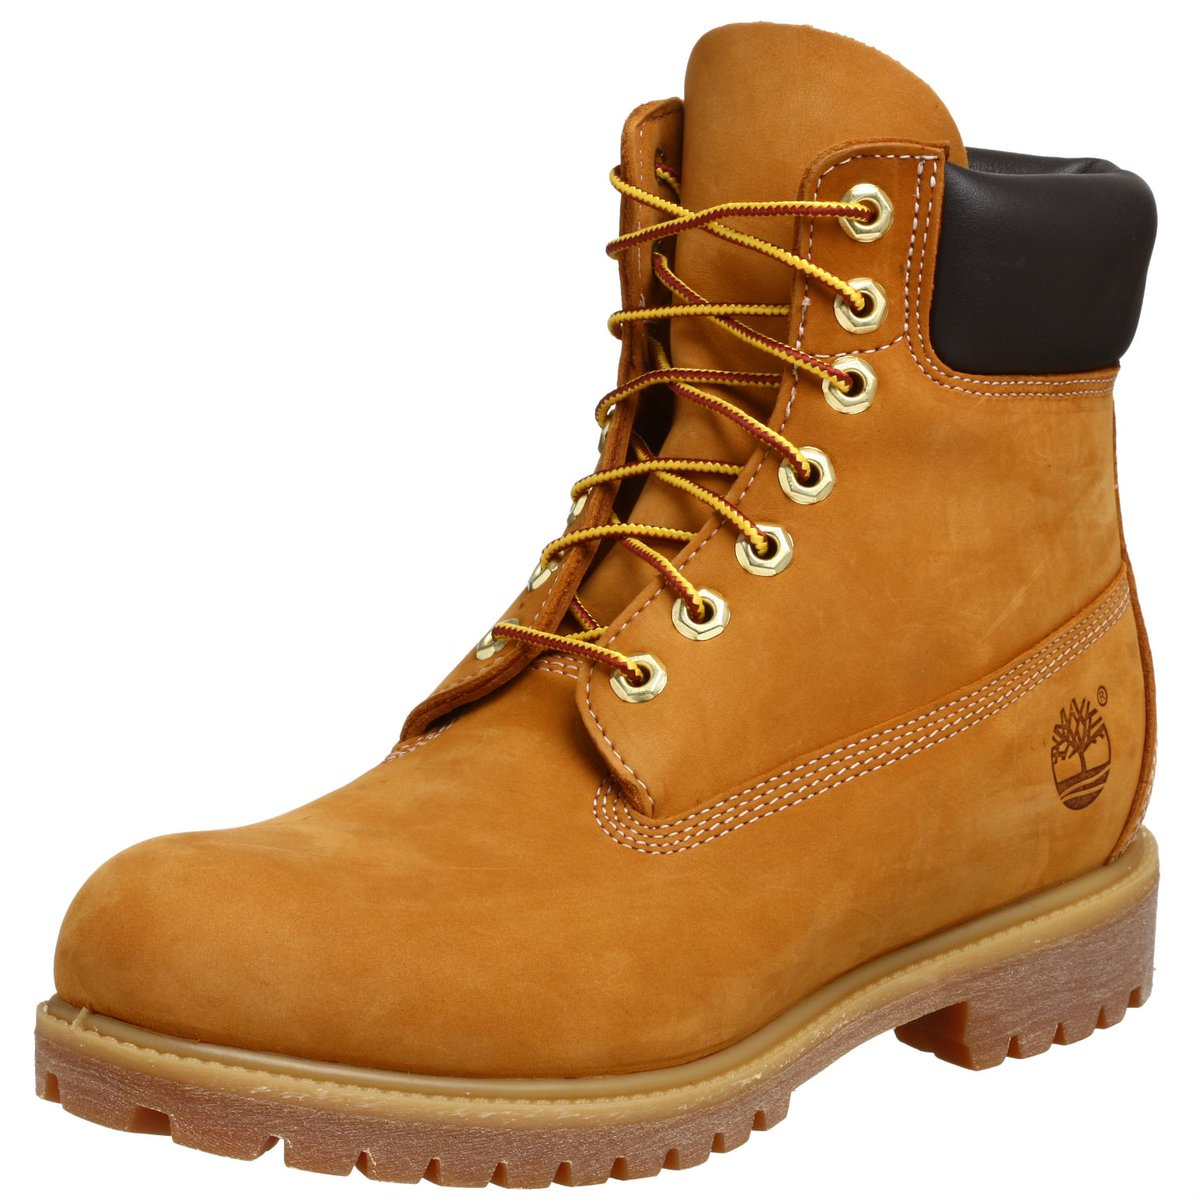 Timberland Boots Clipart.